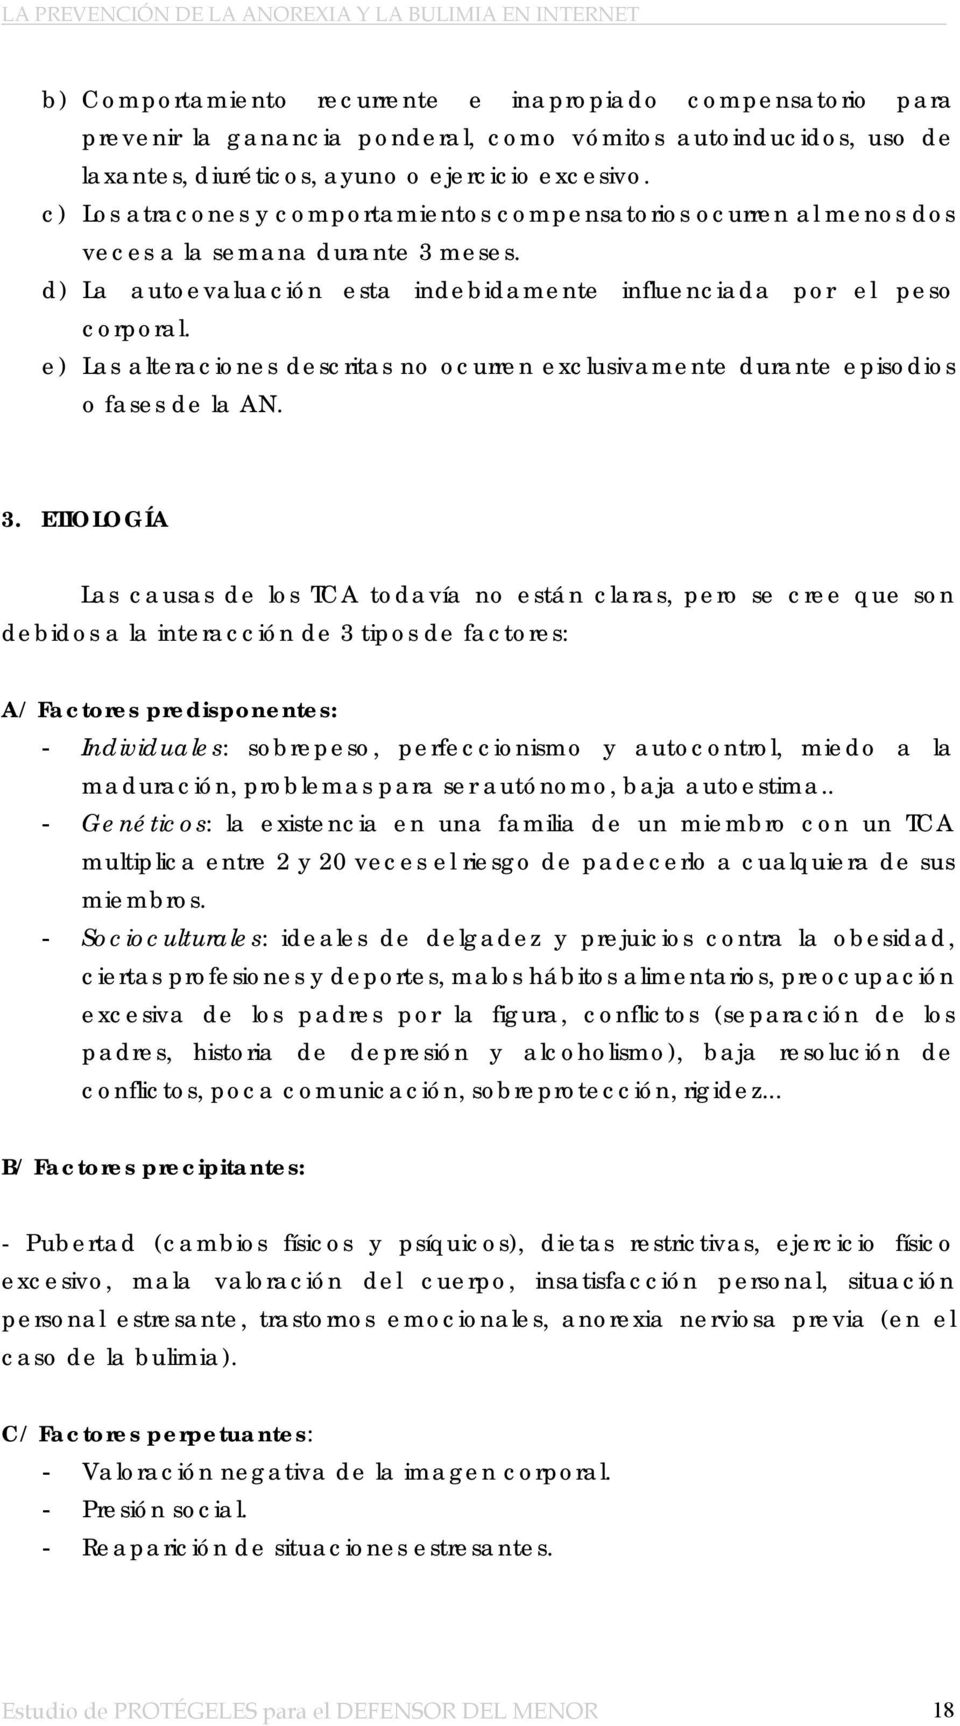 e) Las alteraciones descritas no ocurren exclusivamente durante episodios o fases de la AN. 3.